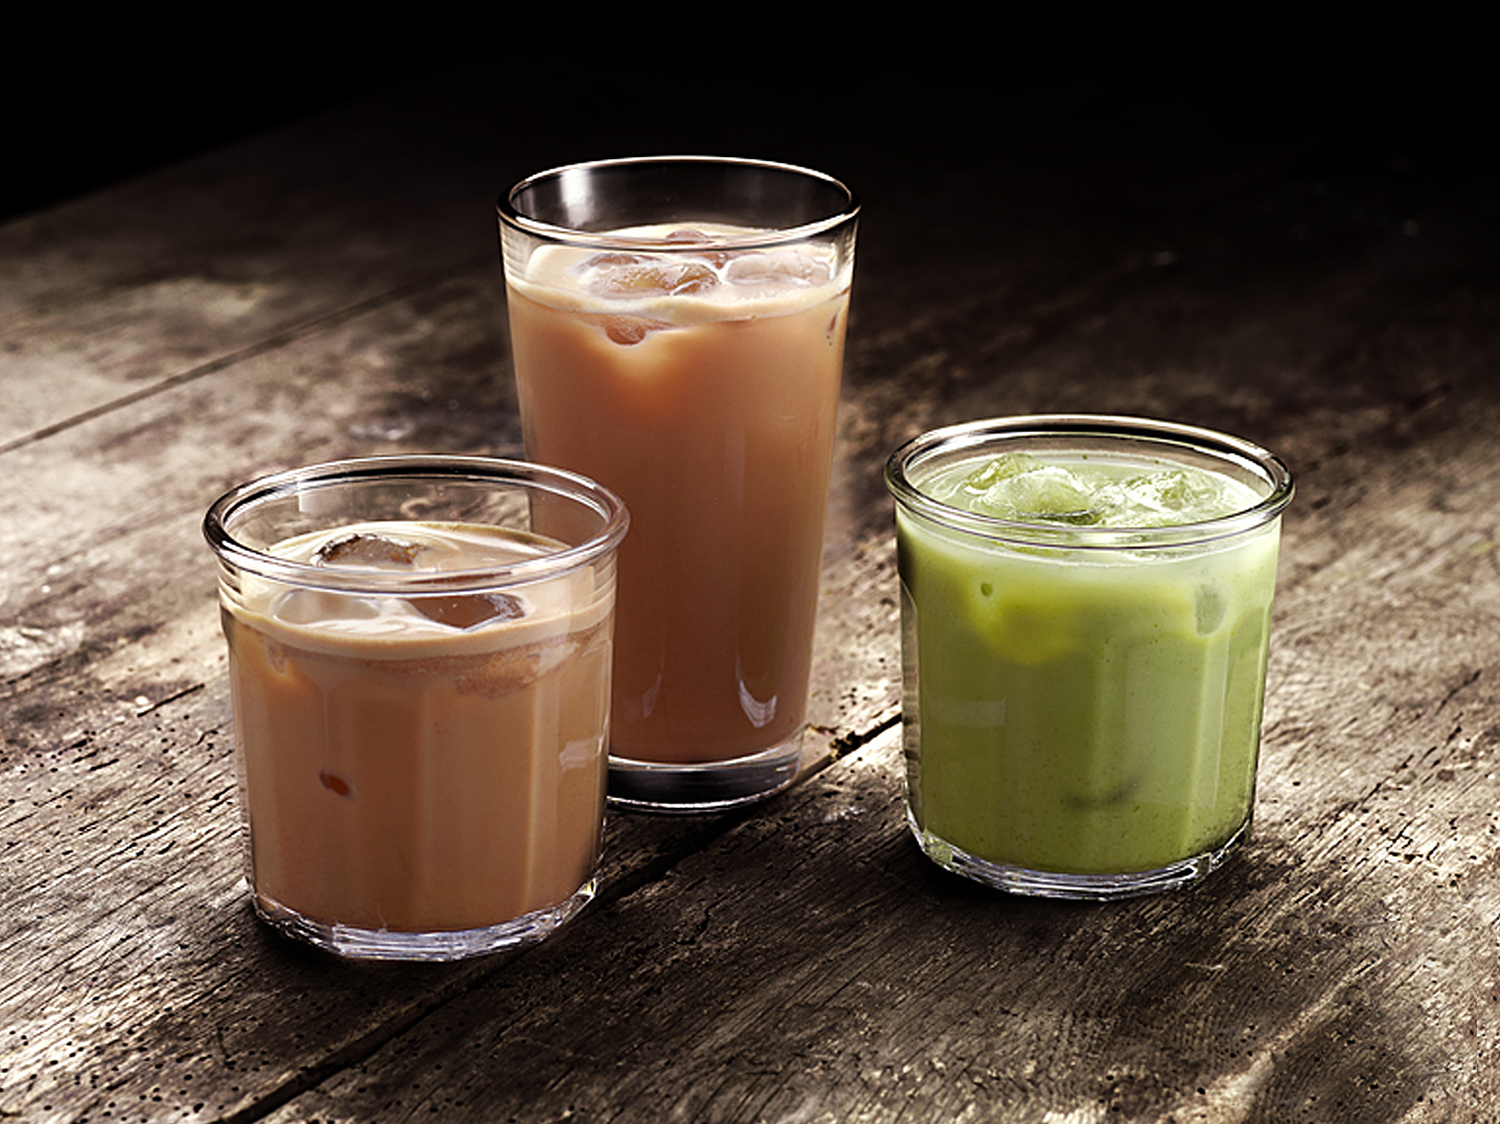 Chai Cooler - 1) Make a paste by mixing 3-4 teaspoons (approx 20g) of Mumbai Railway Chai with a splash of hot water.2) Add 8oz cold Milk or Mylk..3) Give it a good stir and Pour the hot Chai through a fine sieve into a glass with ice cubes and it's ready to drink! If you have a blender you can blend the Chai, milk and ice cubes into a smooth Chai Cooler.